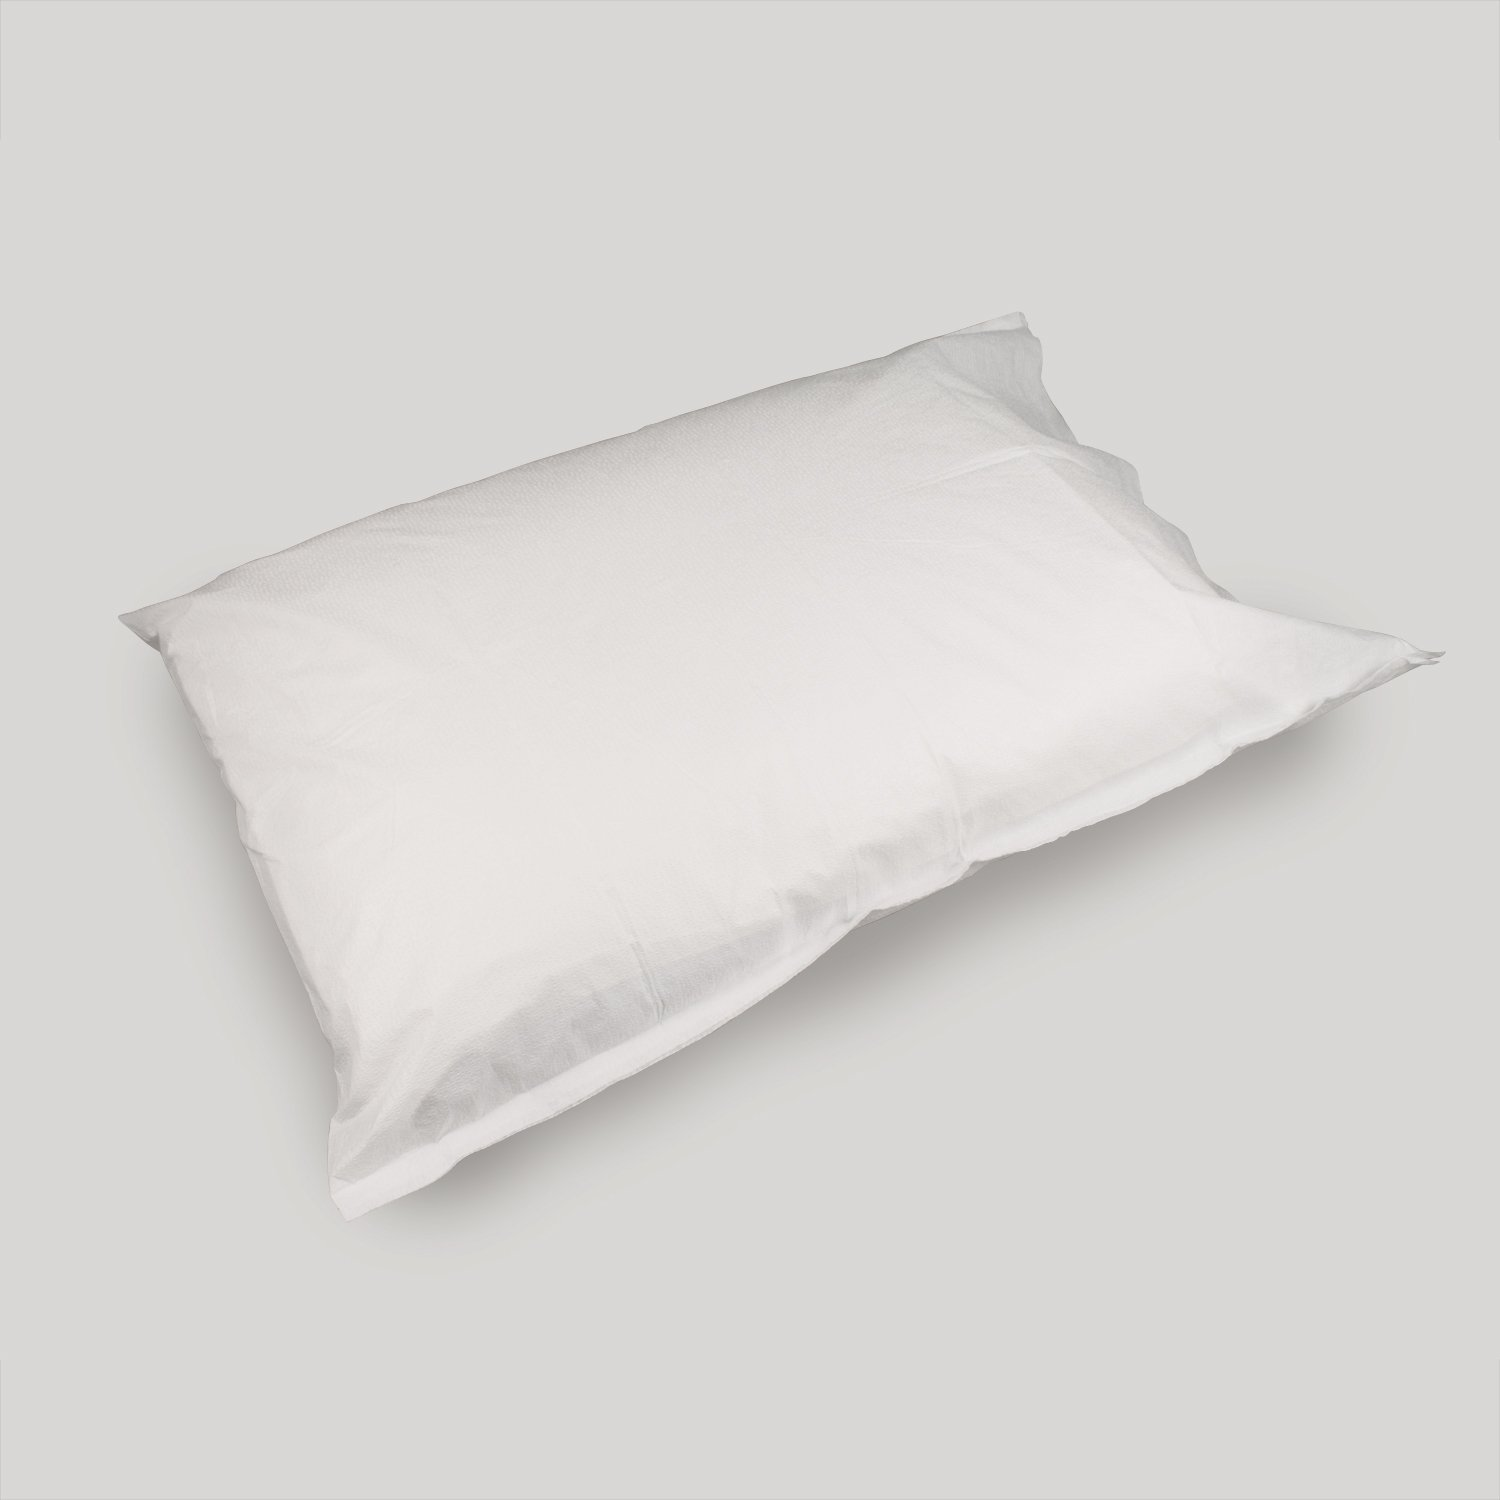 Dynarex 8161 Pillow Cases 21 x 30 T/P 100 Case - White by Dynarex